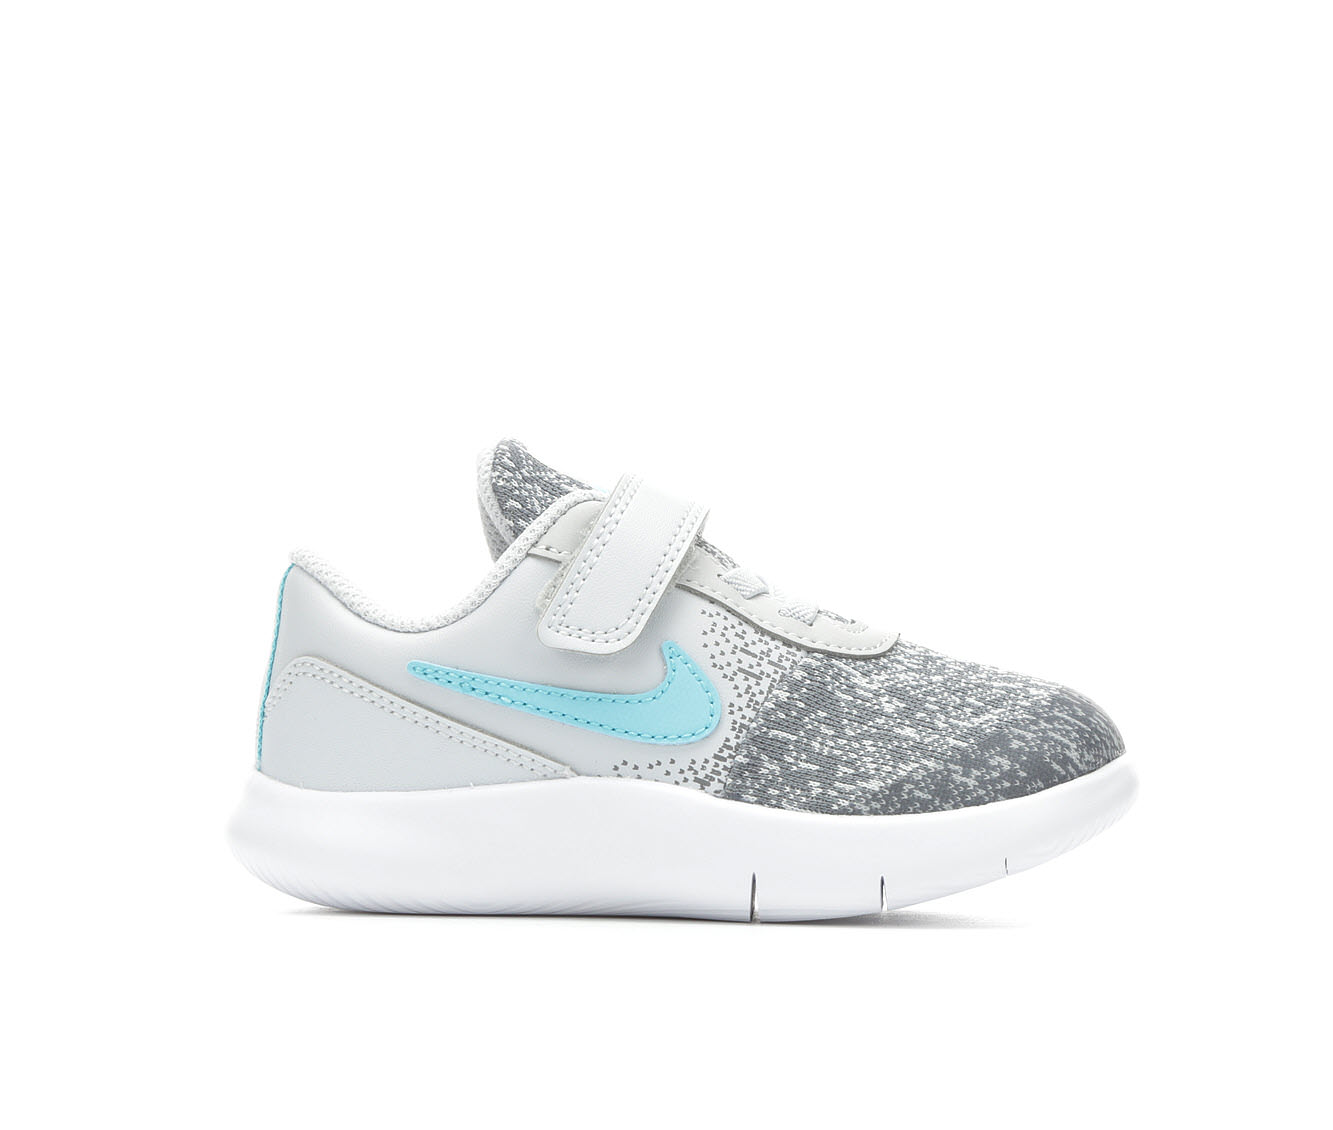 Girls' Nike Infant Flex Contact Velcro Running Shoes (Grey)